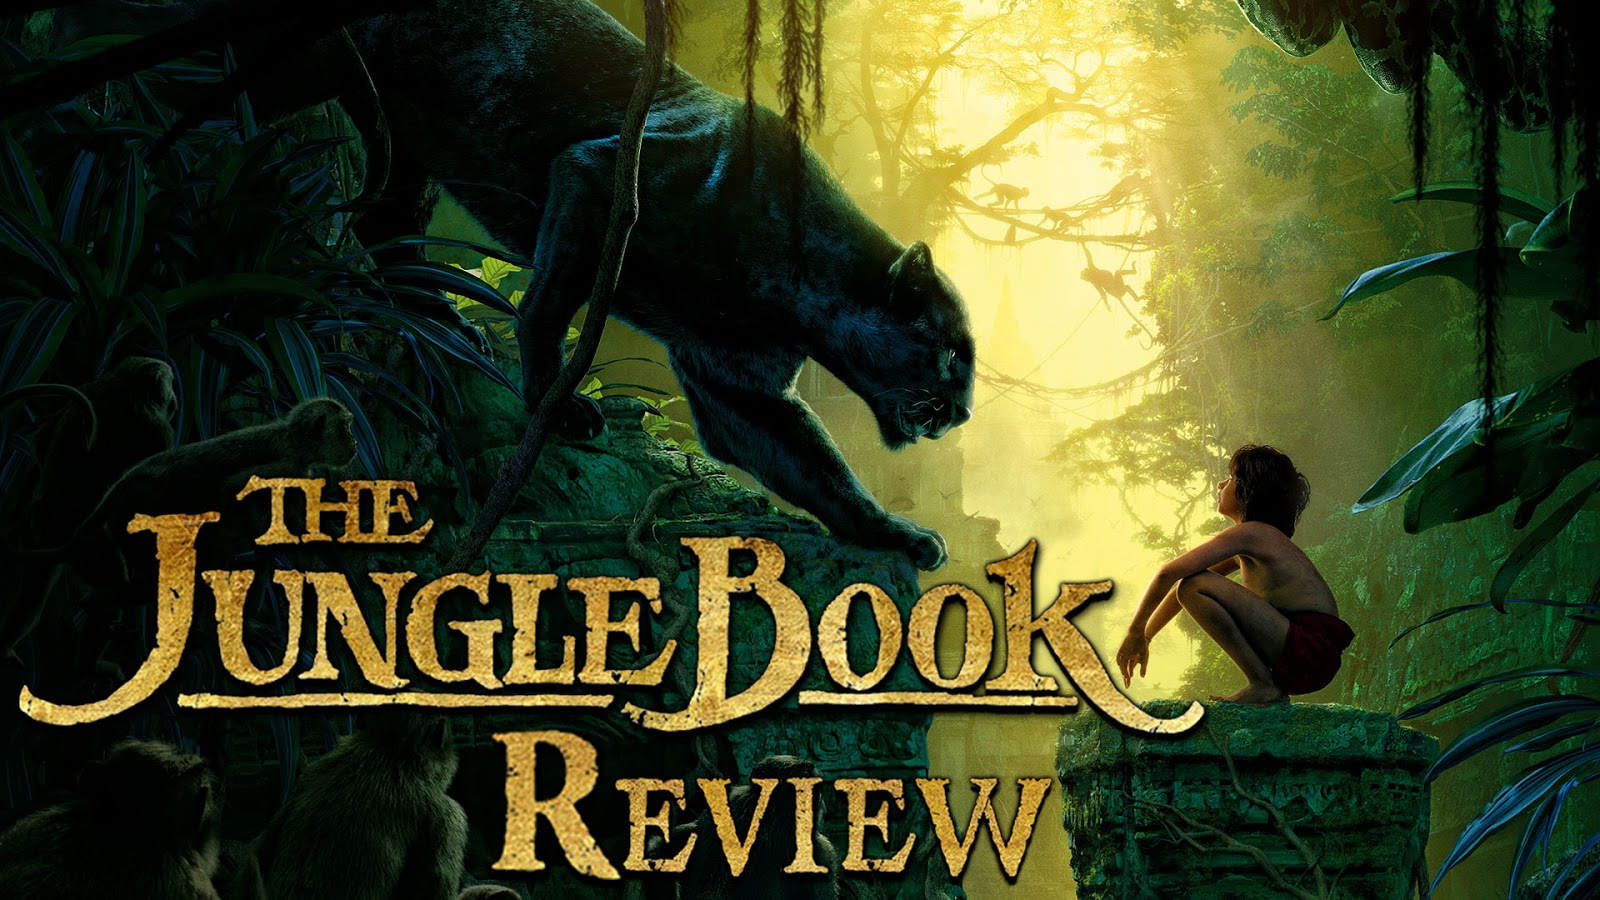 movie review The Jungle Book podcast